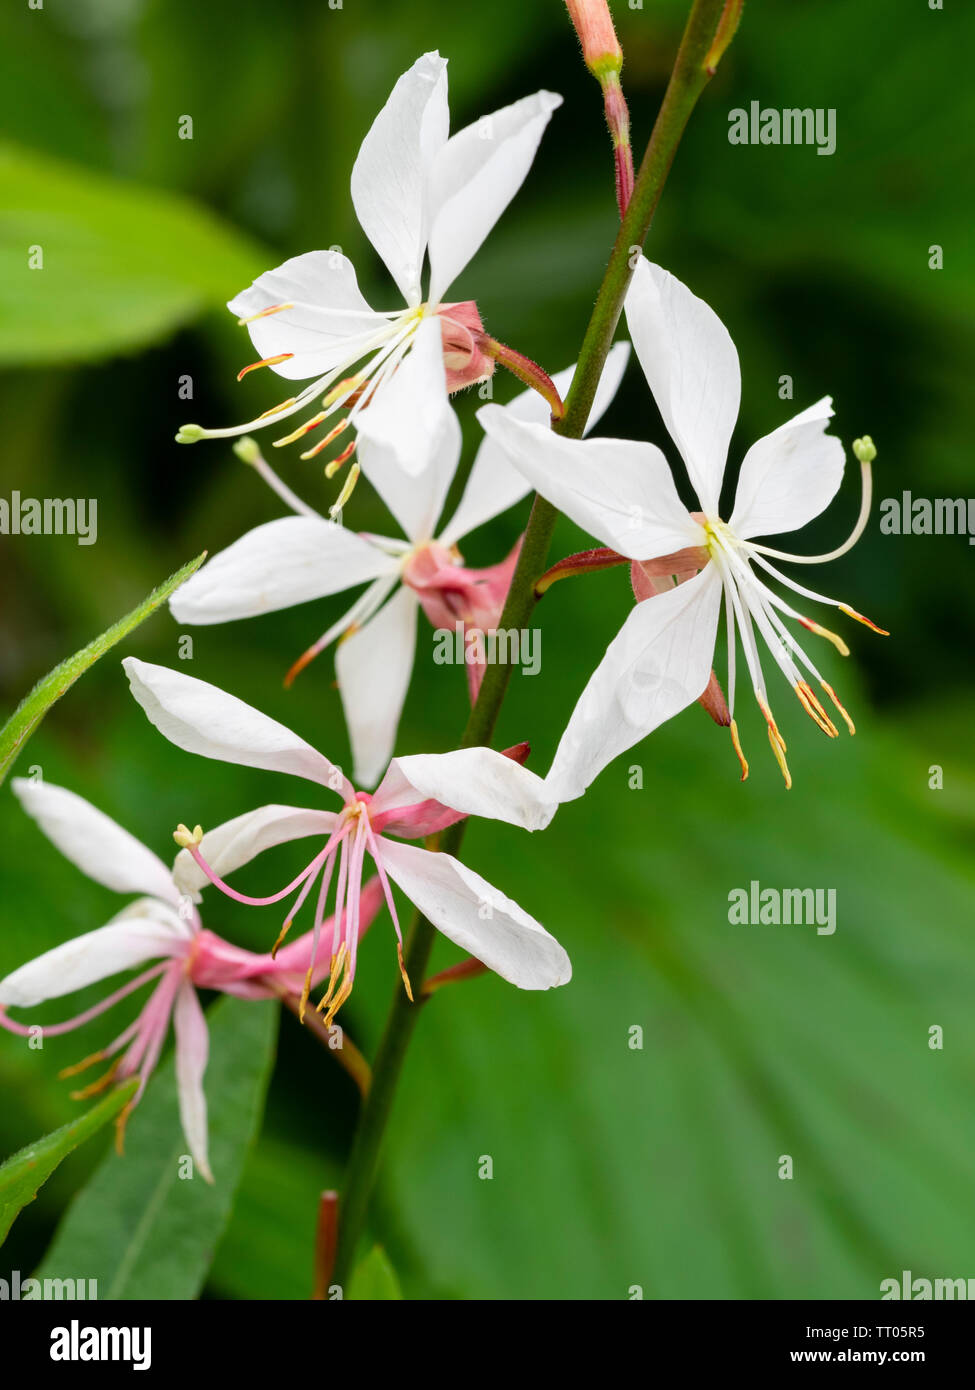 White flowers of the hardy, summer flowering perennial, Gaura lindheimeri 'Whirling Butterflies' - Stock Image